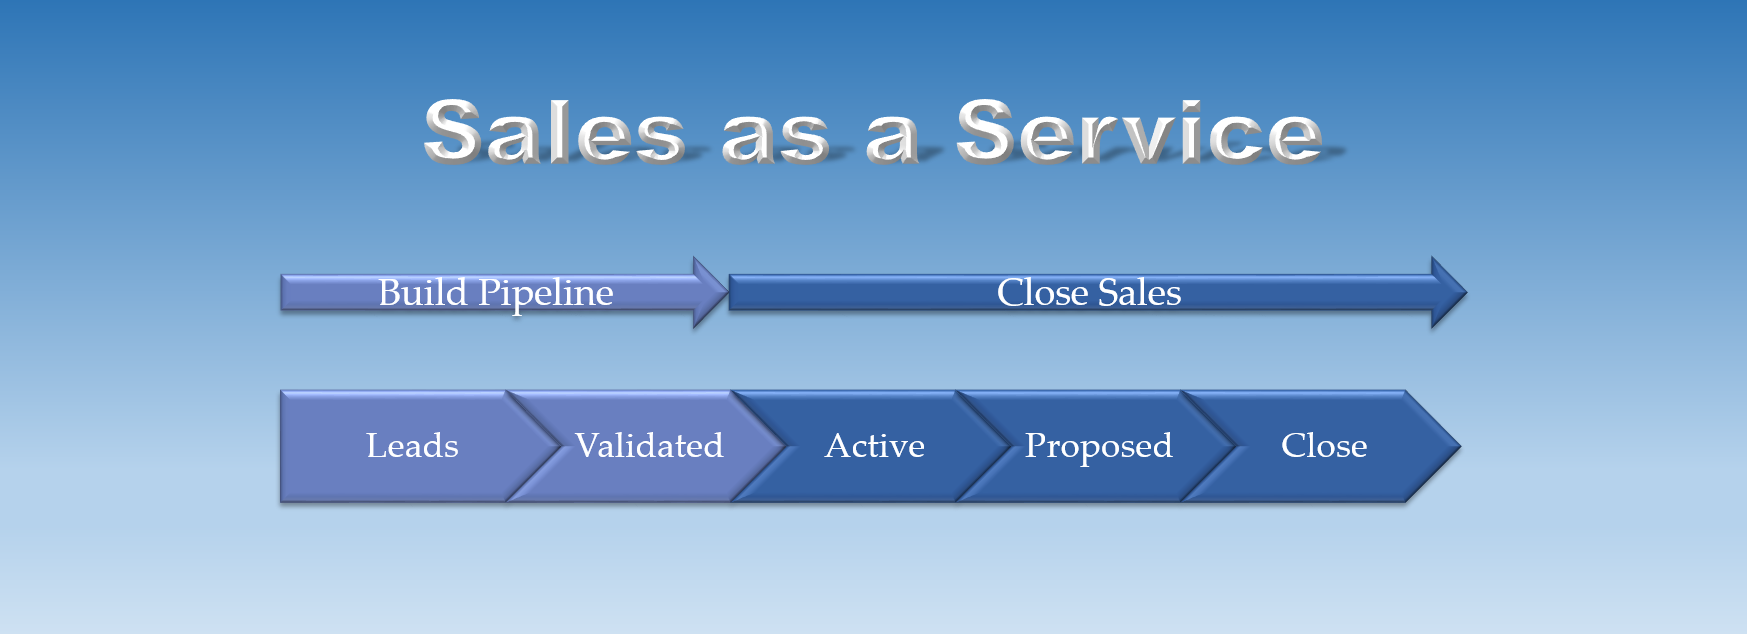 Sales as a Service